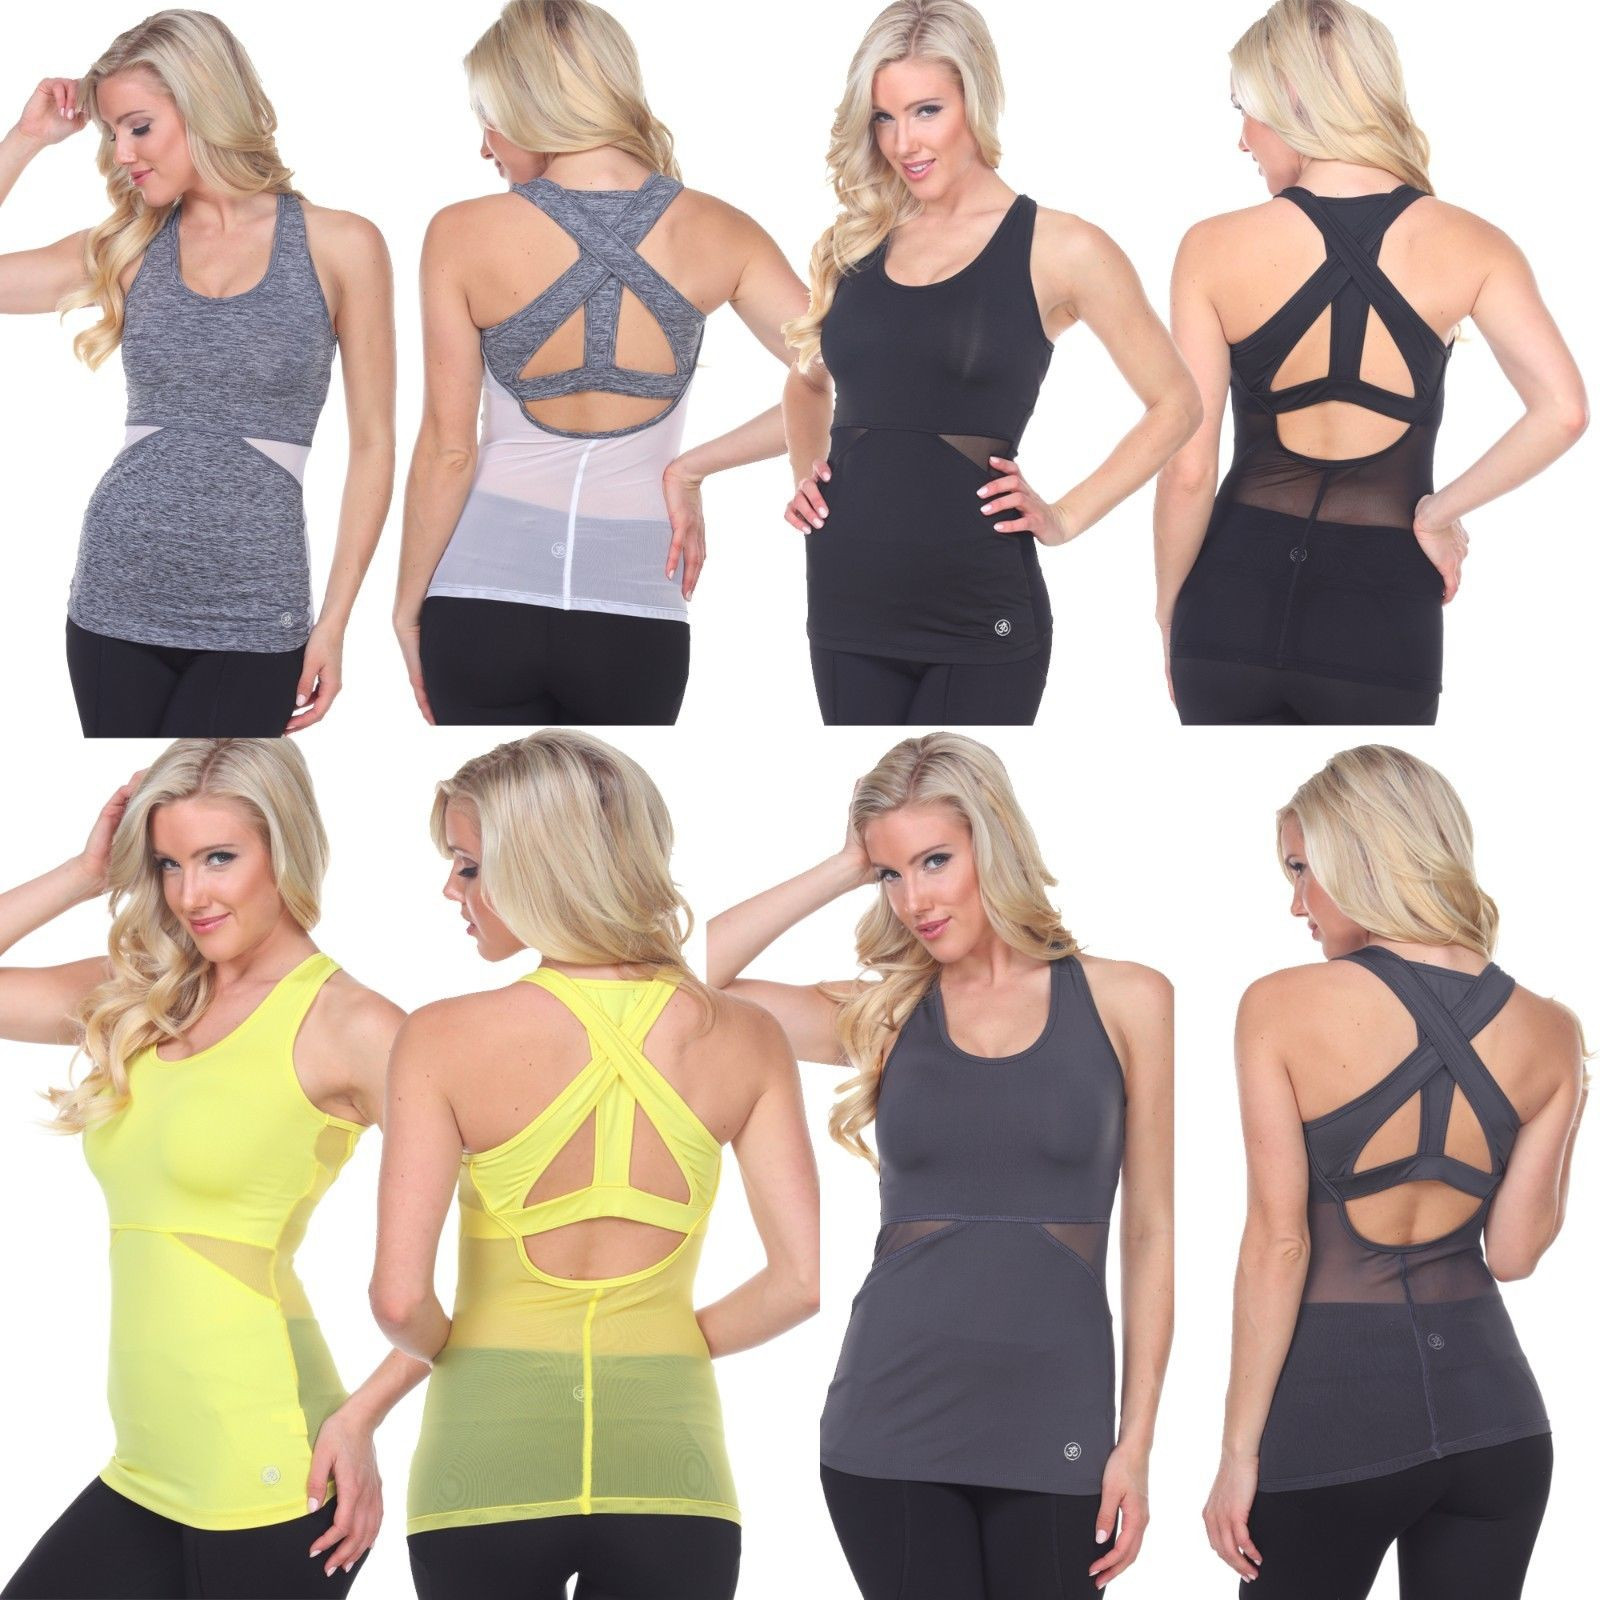 Women's Mesh Tank Top Gym Yoga sleeveless open back Activewear 5 colors